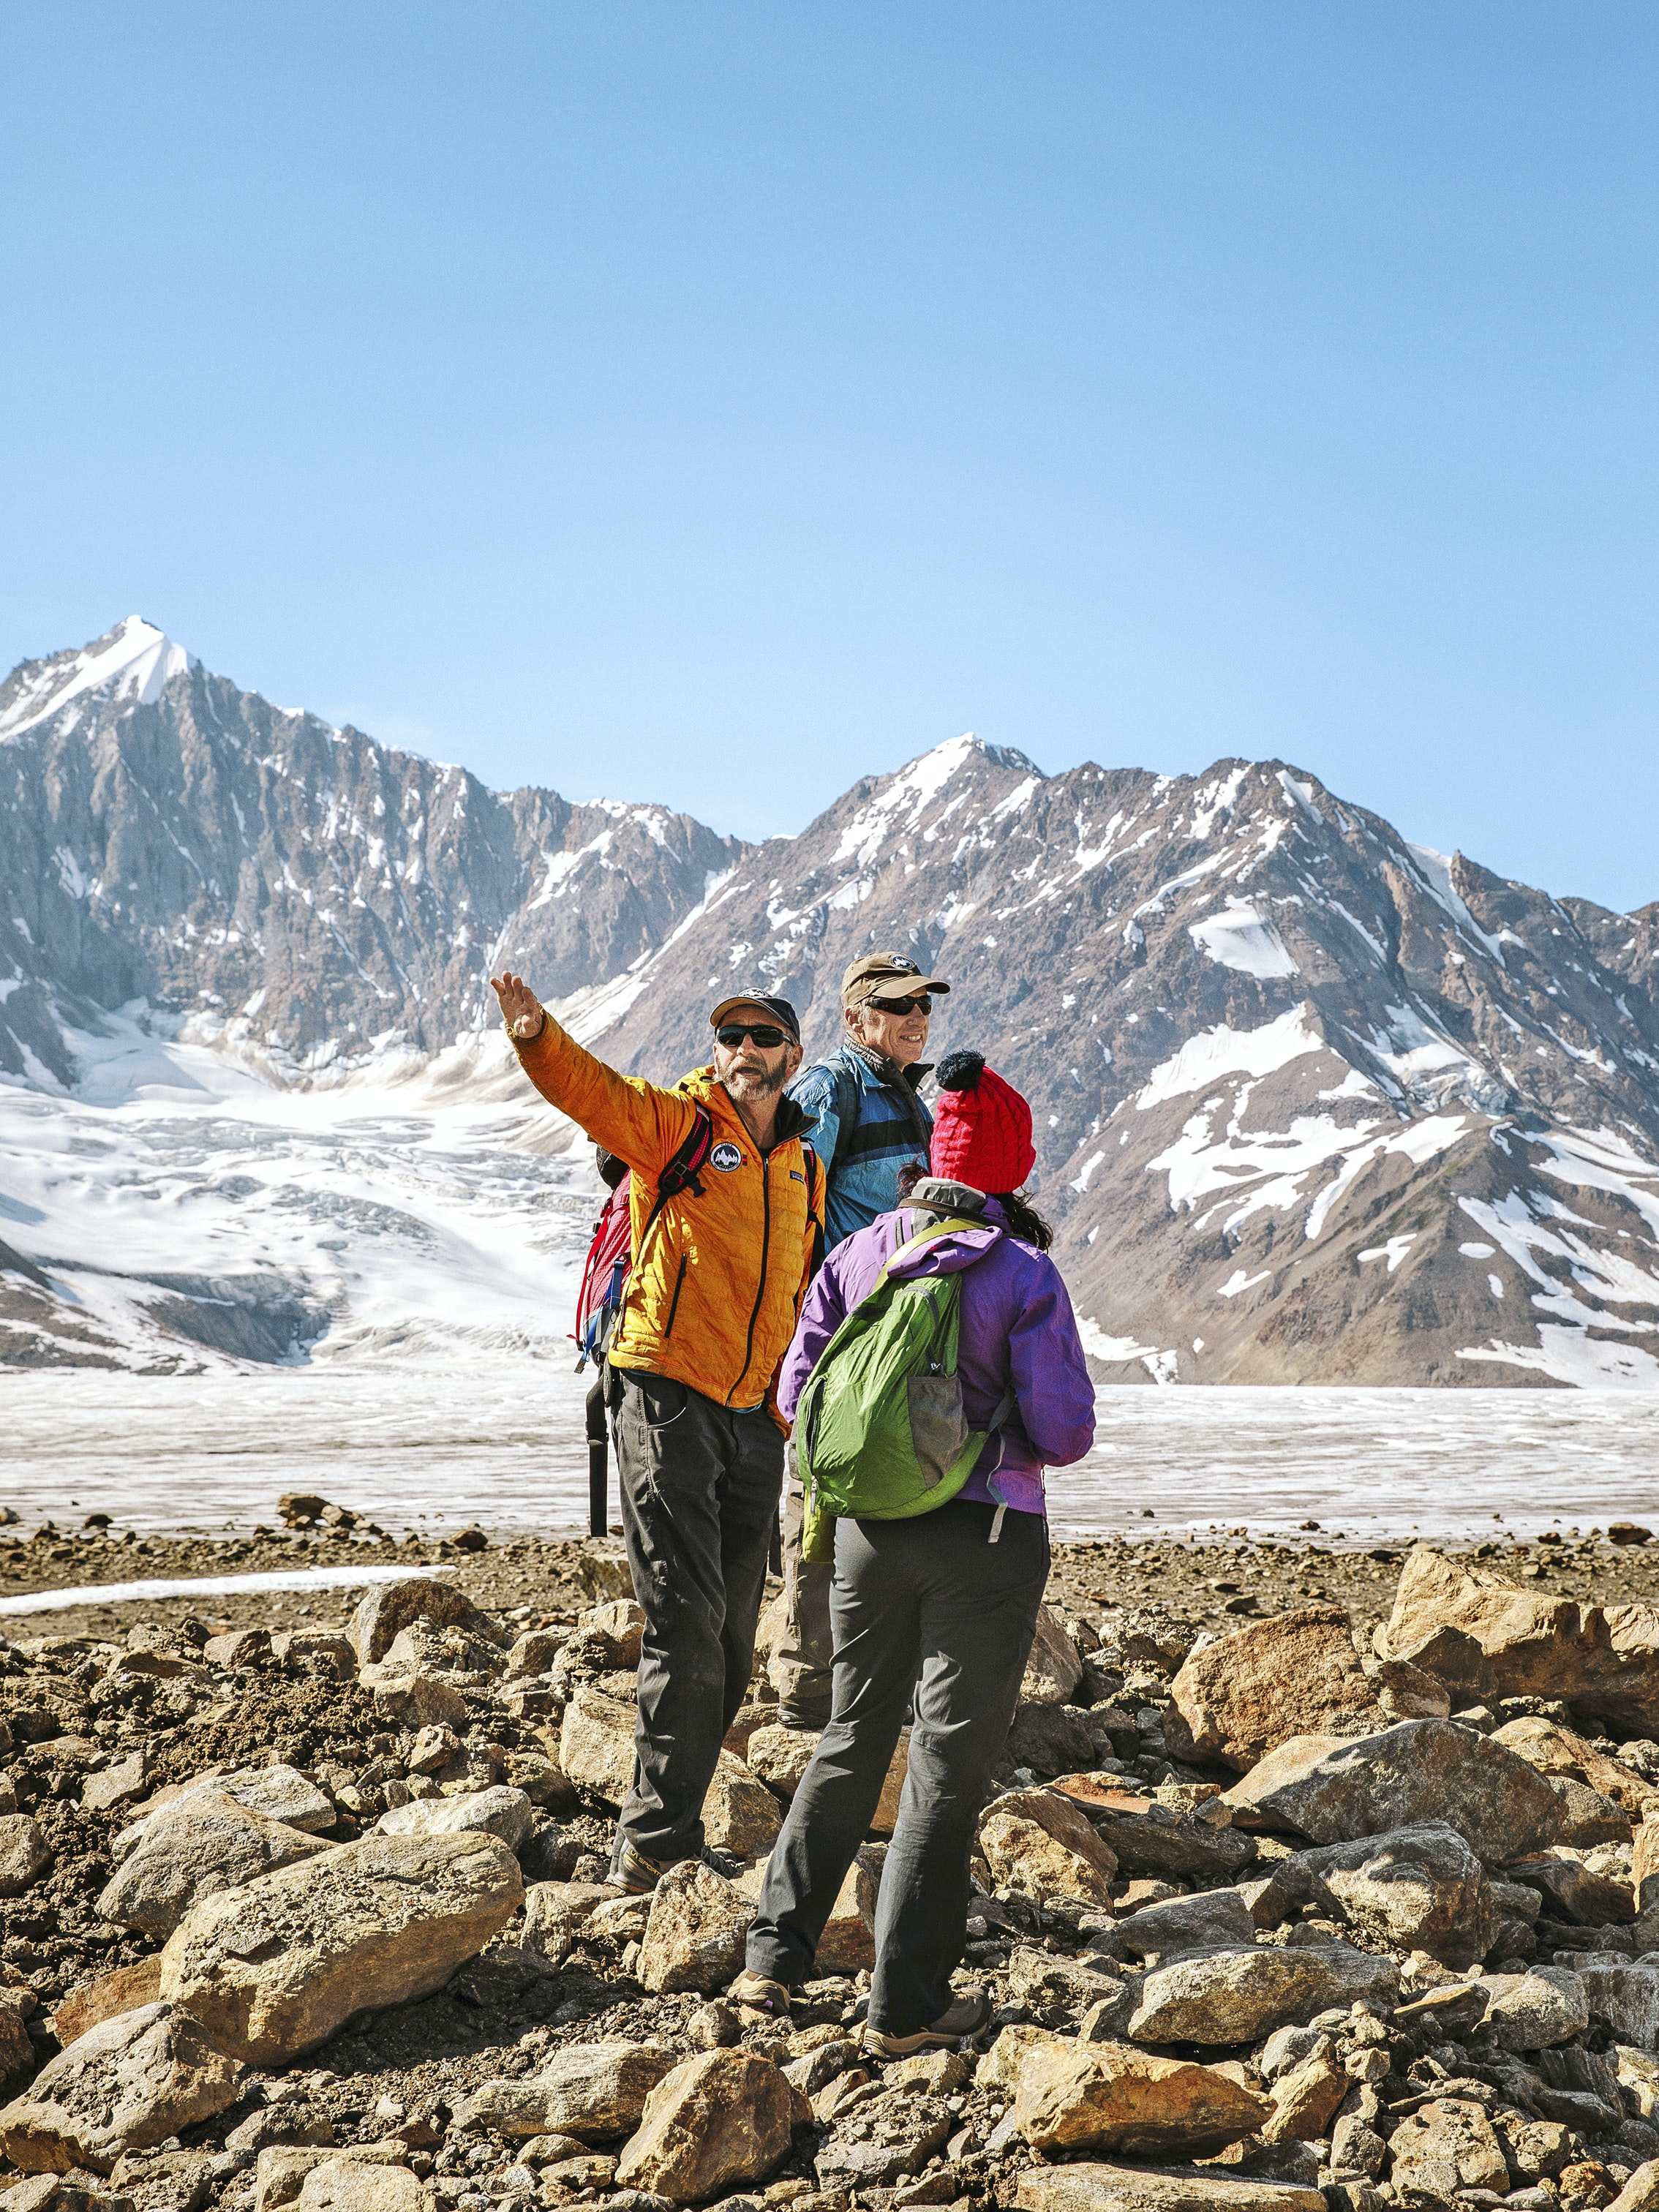 Standing amid the rocky debris of a glacial moraine, guides and hikers from Ultima Thule Lodge take in one of the panoramas of Wrangell–St. Elias National Park.